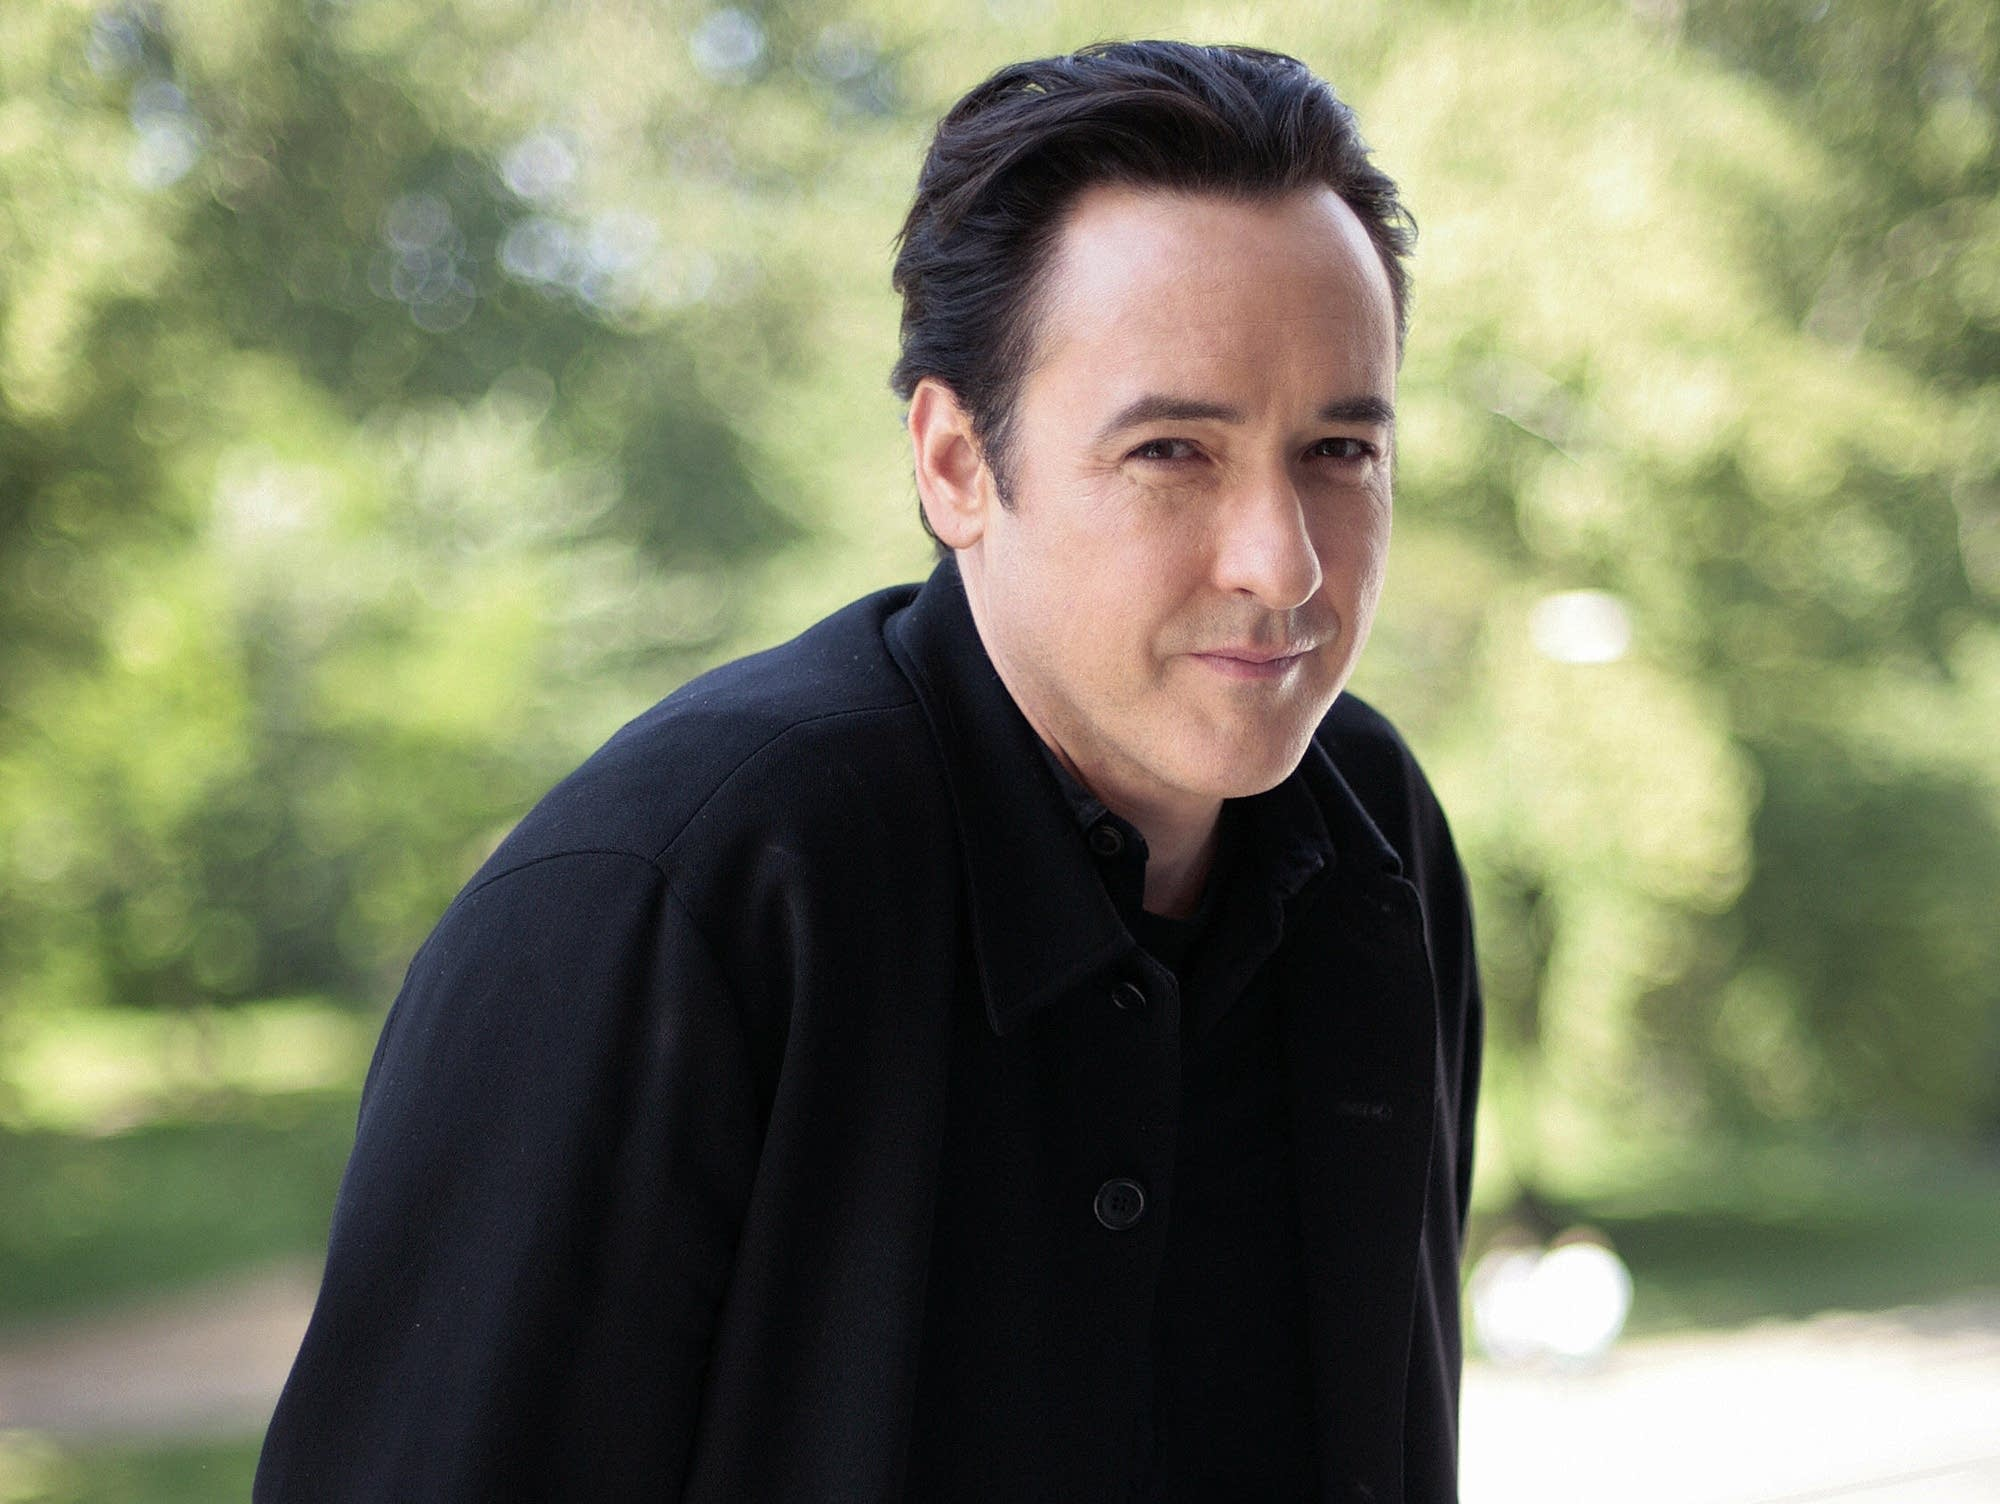 Interview: John Cusack on Lloyd Dobler and the music of 'Say Anything...'